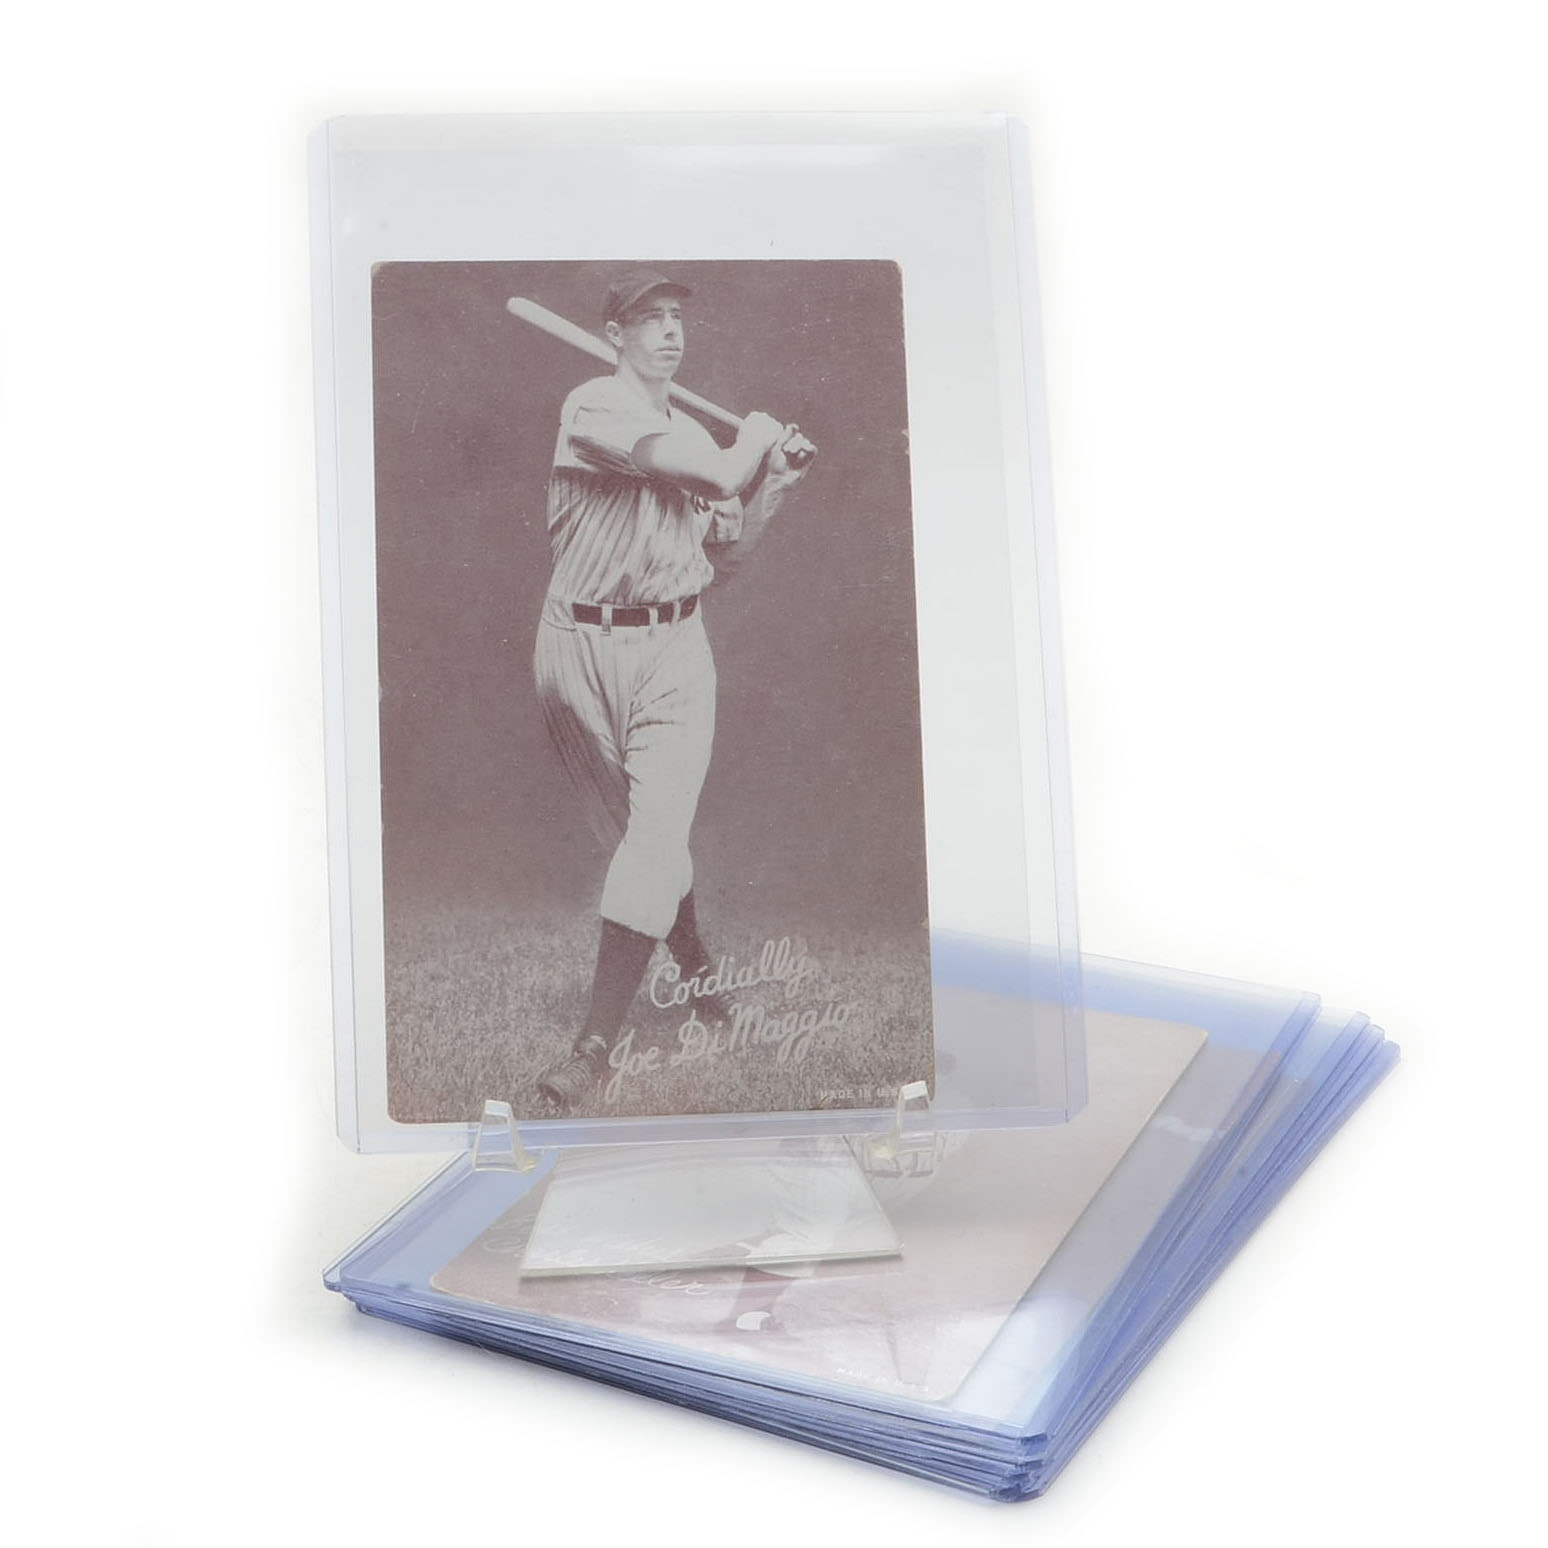 Six 1940s Exhibit Baseball Cards With DiMaggio and Greenberg